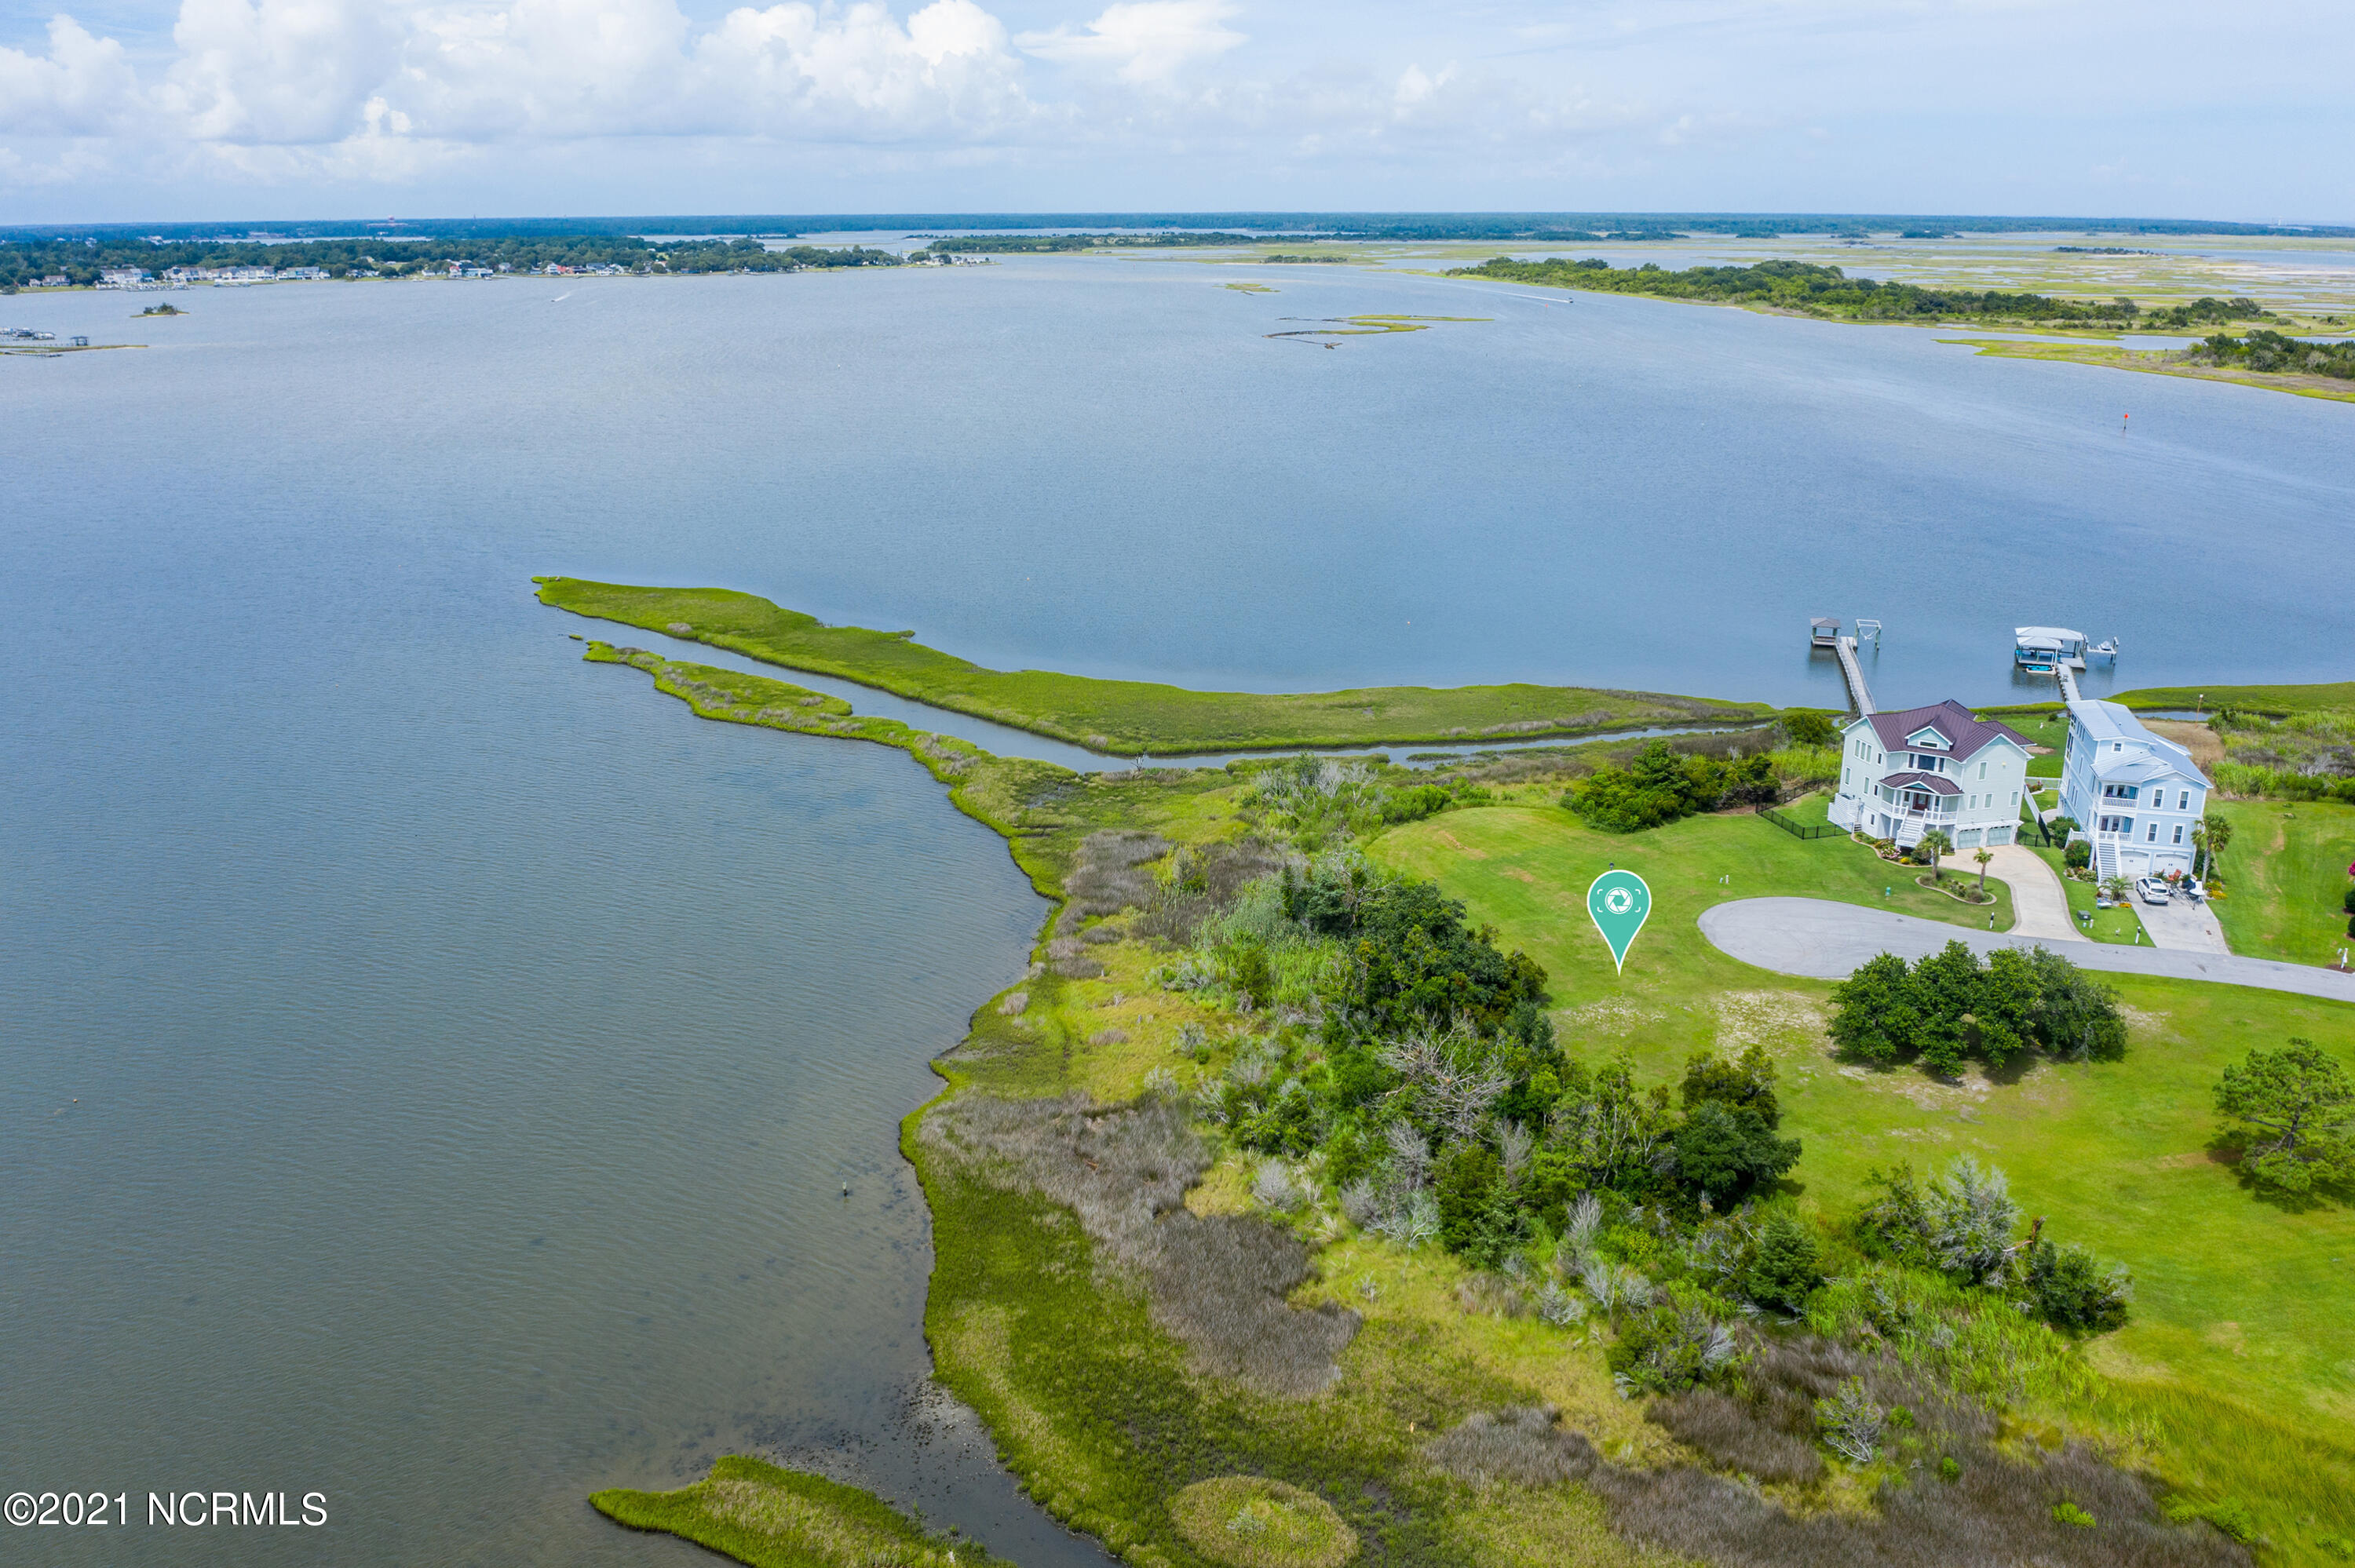 One of a kind lot on the Intracoastal Waterway. Build your dream home in the premier community of Pelican Point. You can enjoy sunrises to sunsets in this truly unique property.